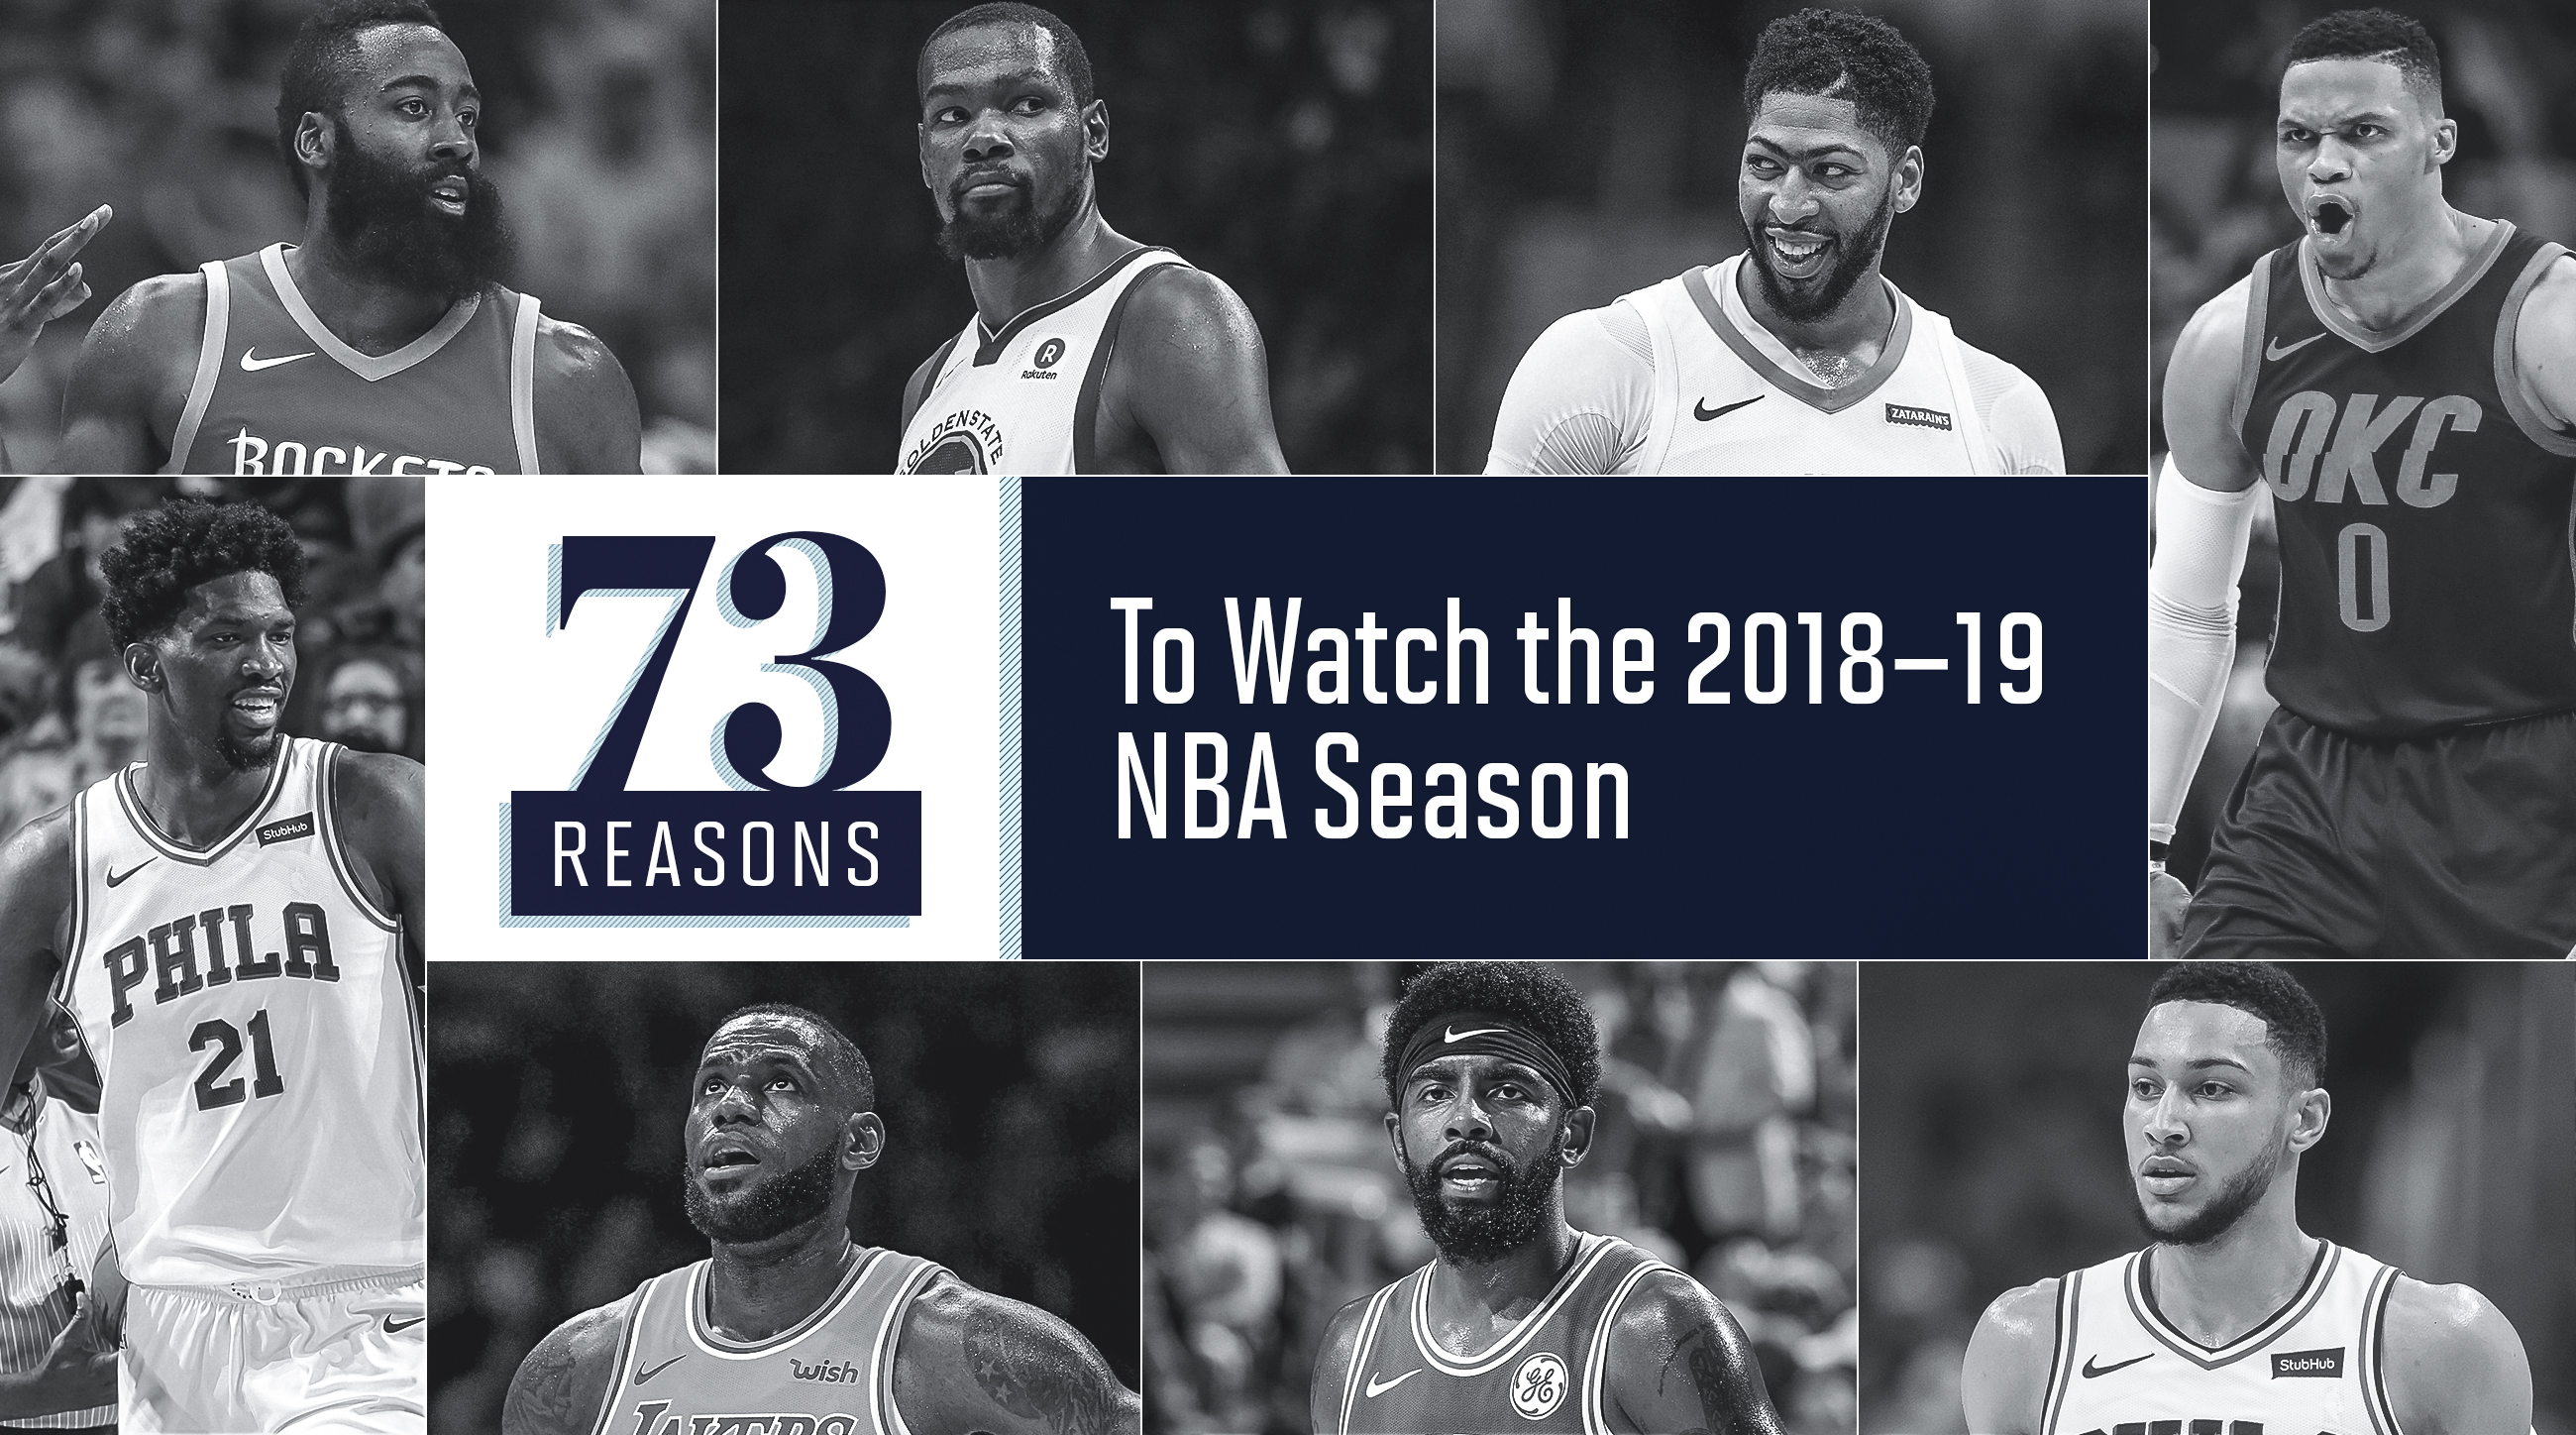 8689537e8f0 2018-19 NBA Season  73 reasons to watch